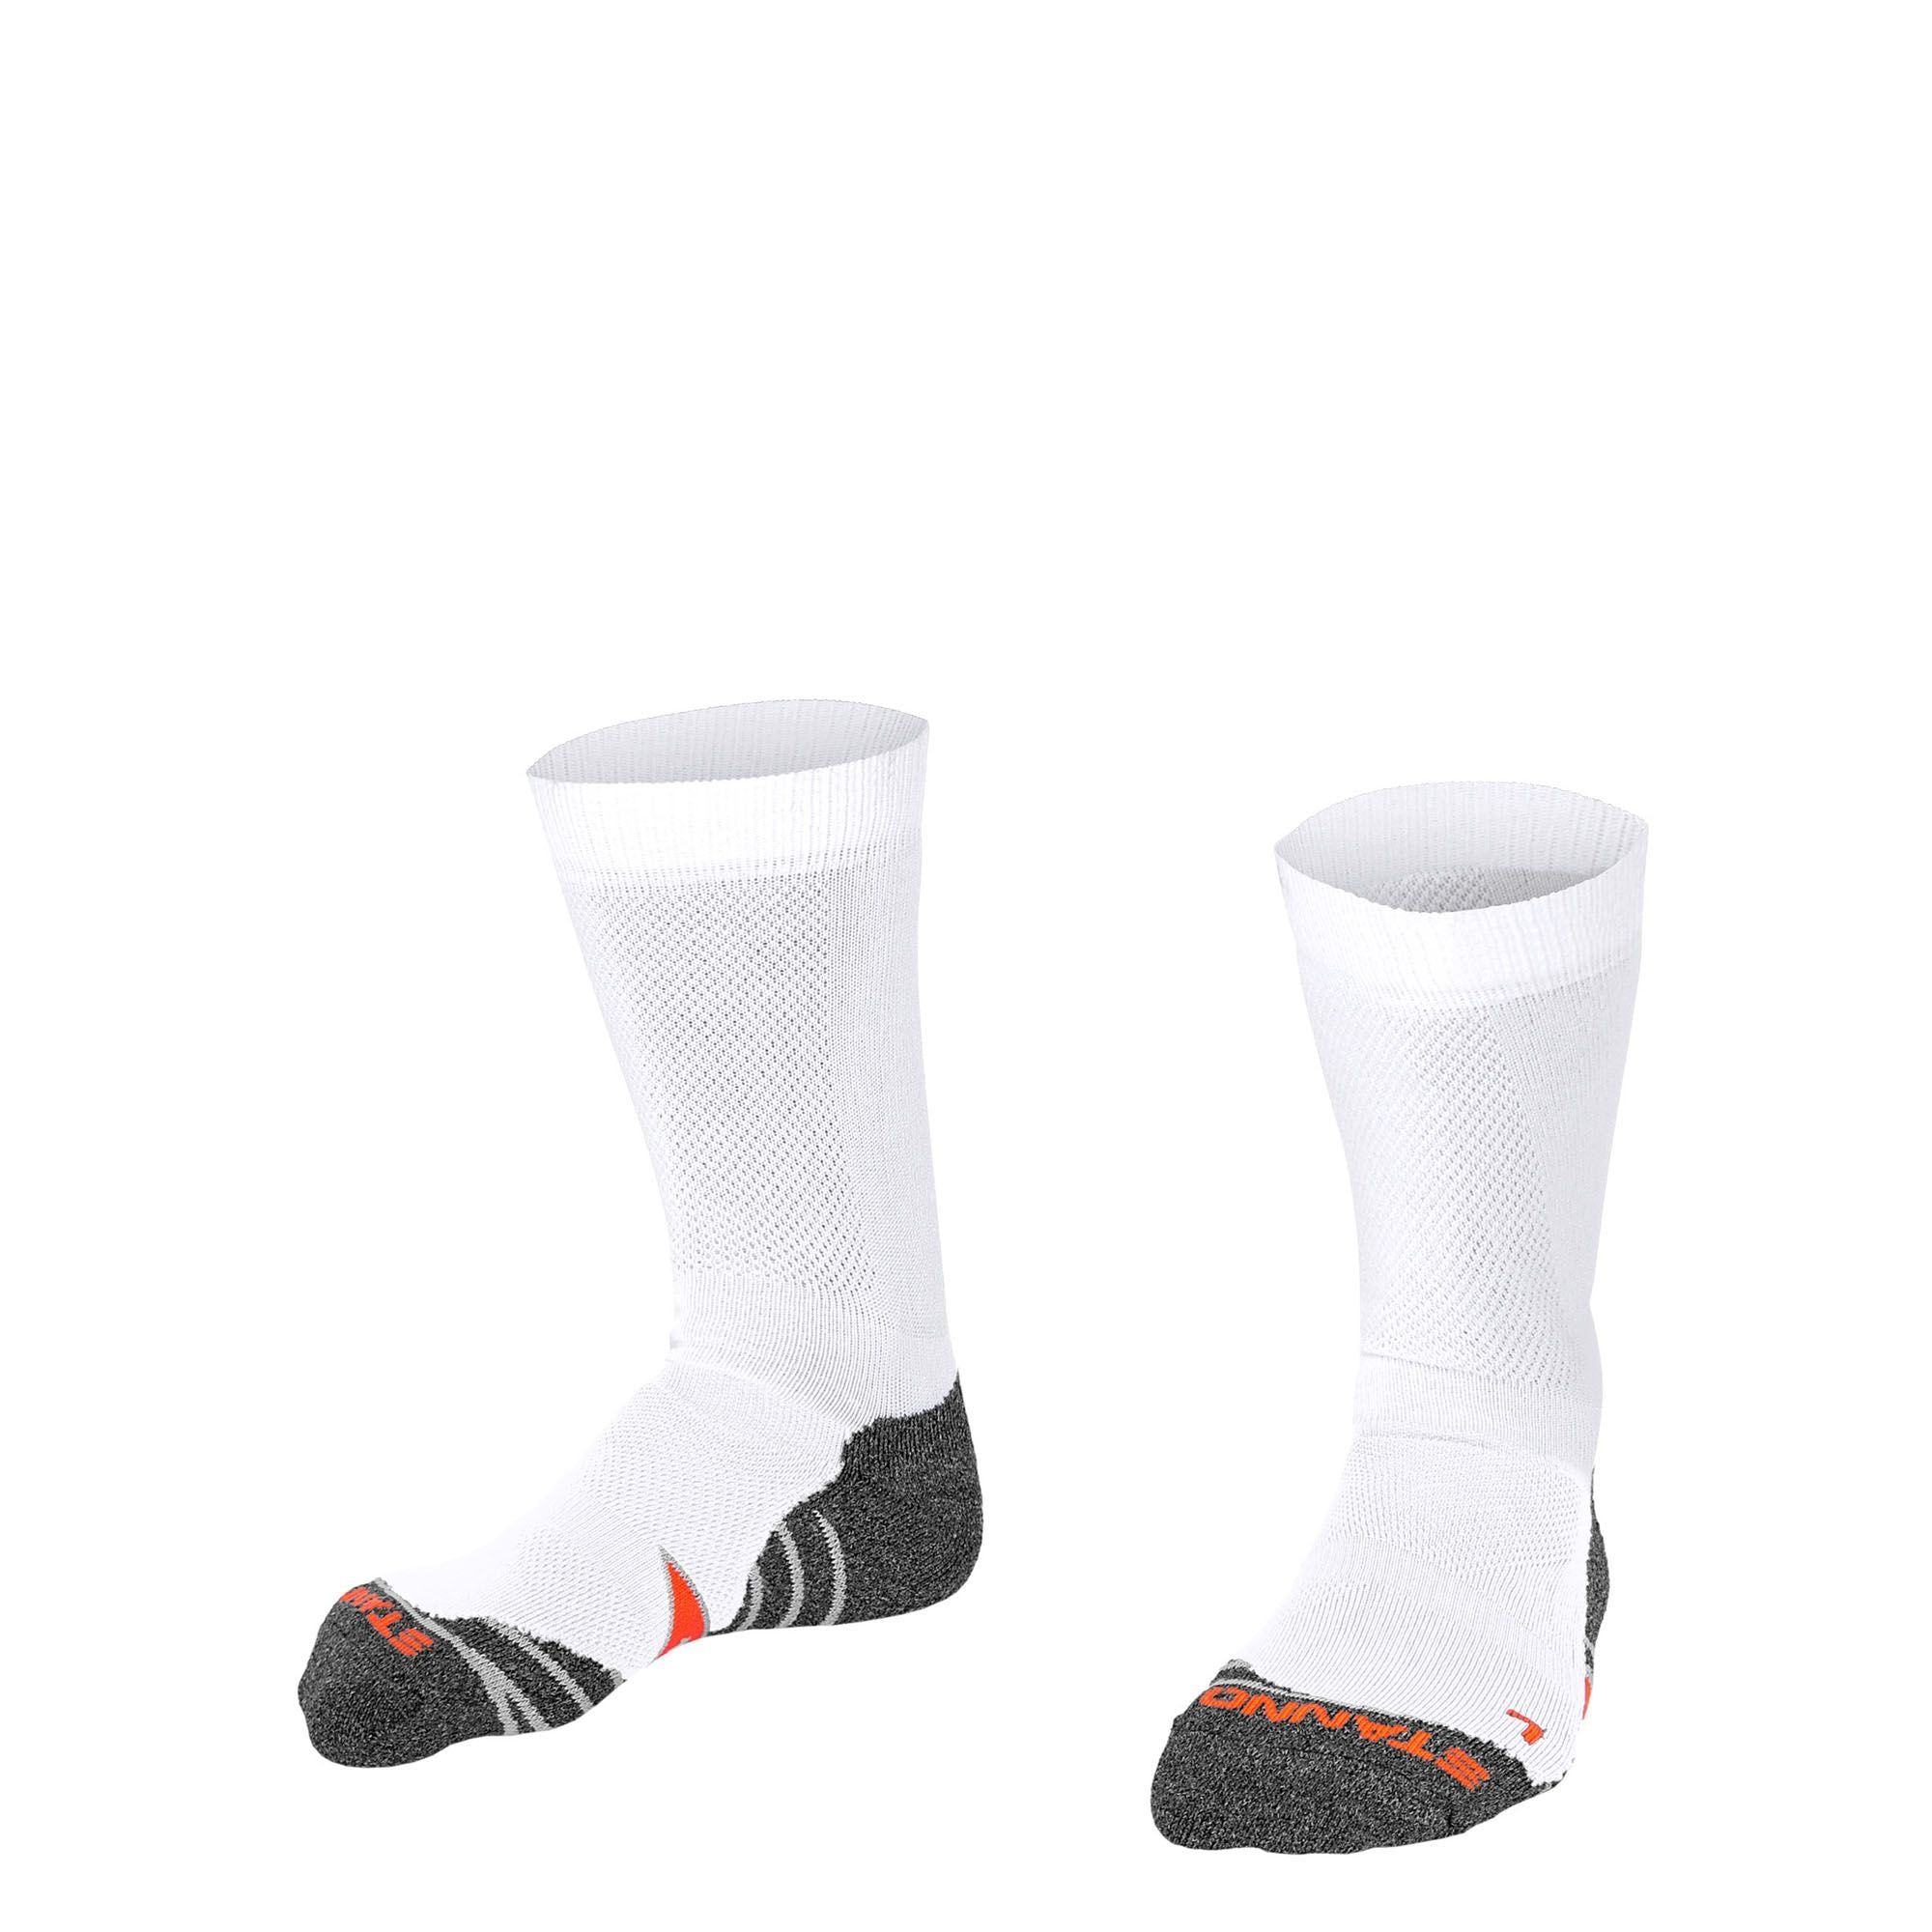 Stanno Elite sock in white with grey, white and orange sole